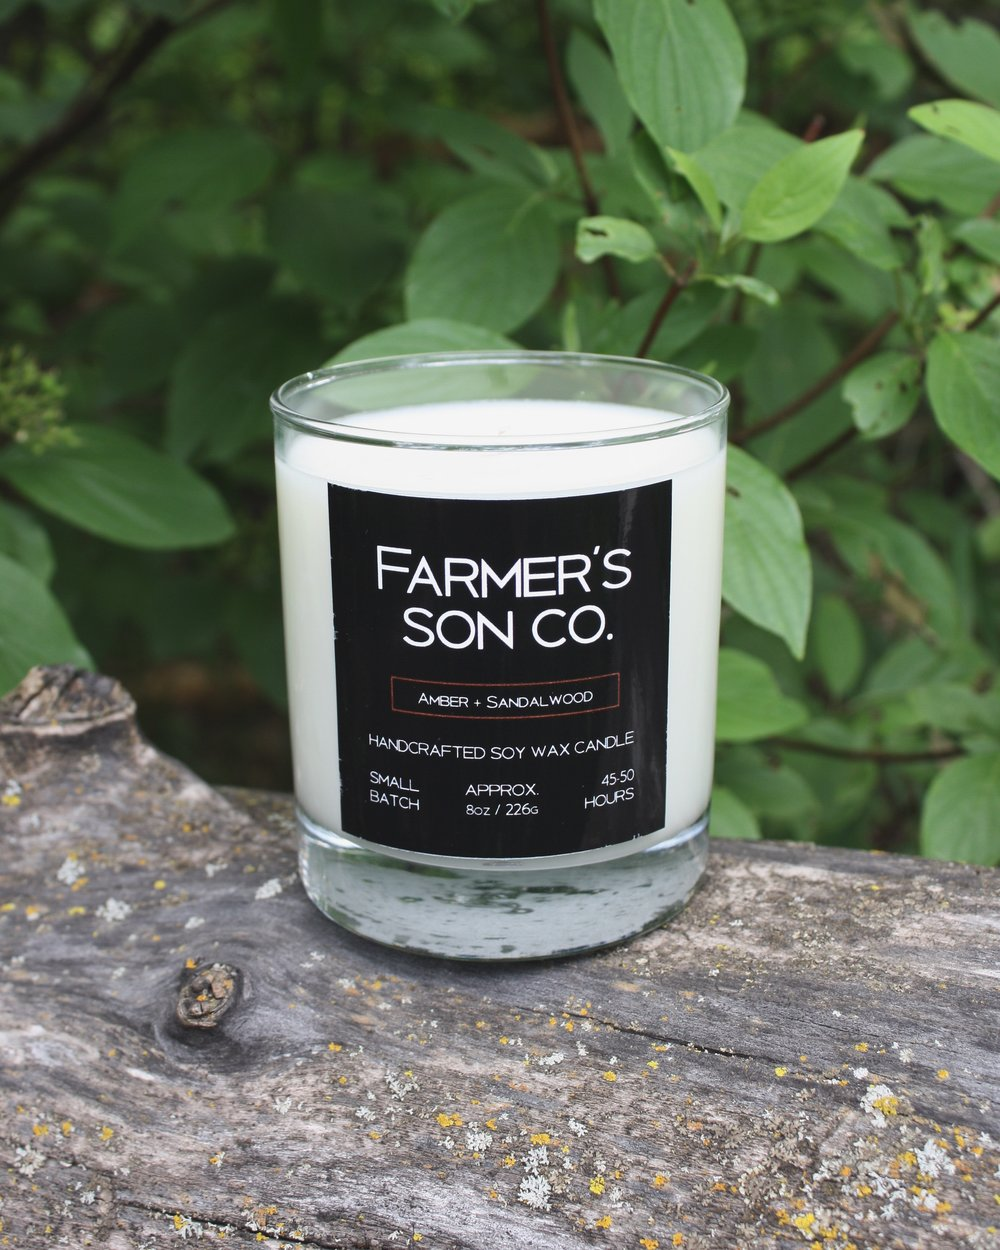 AMBER + SANDALWOOD The Farmer's Son Co. Amber + Sandalwood is inspired by the farmer's son's travels. Dark and woodsy notes of sandalwood, musky, smoky and exotic amber. Spicy and earthy, an inviting scent for those long summer nights